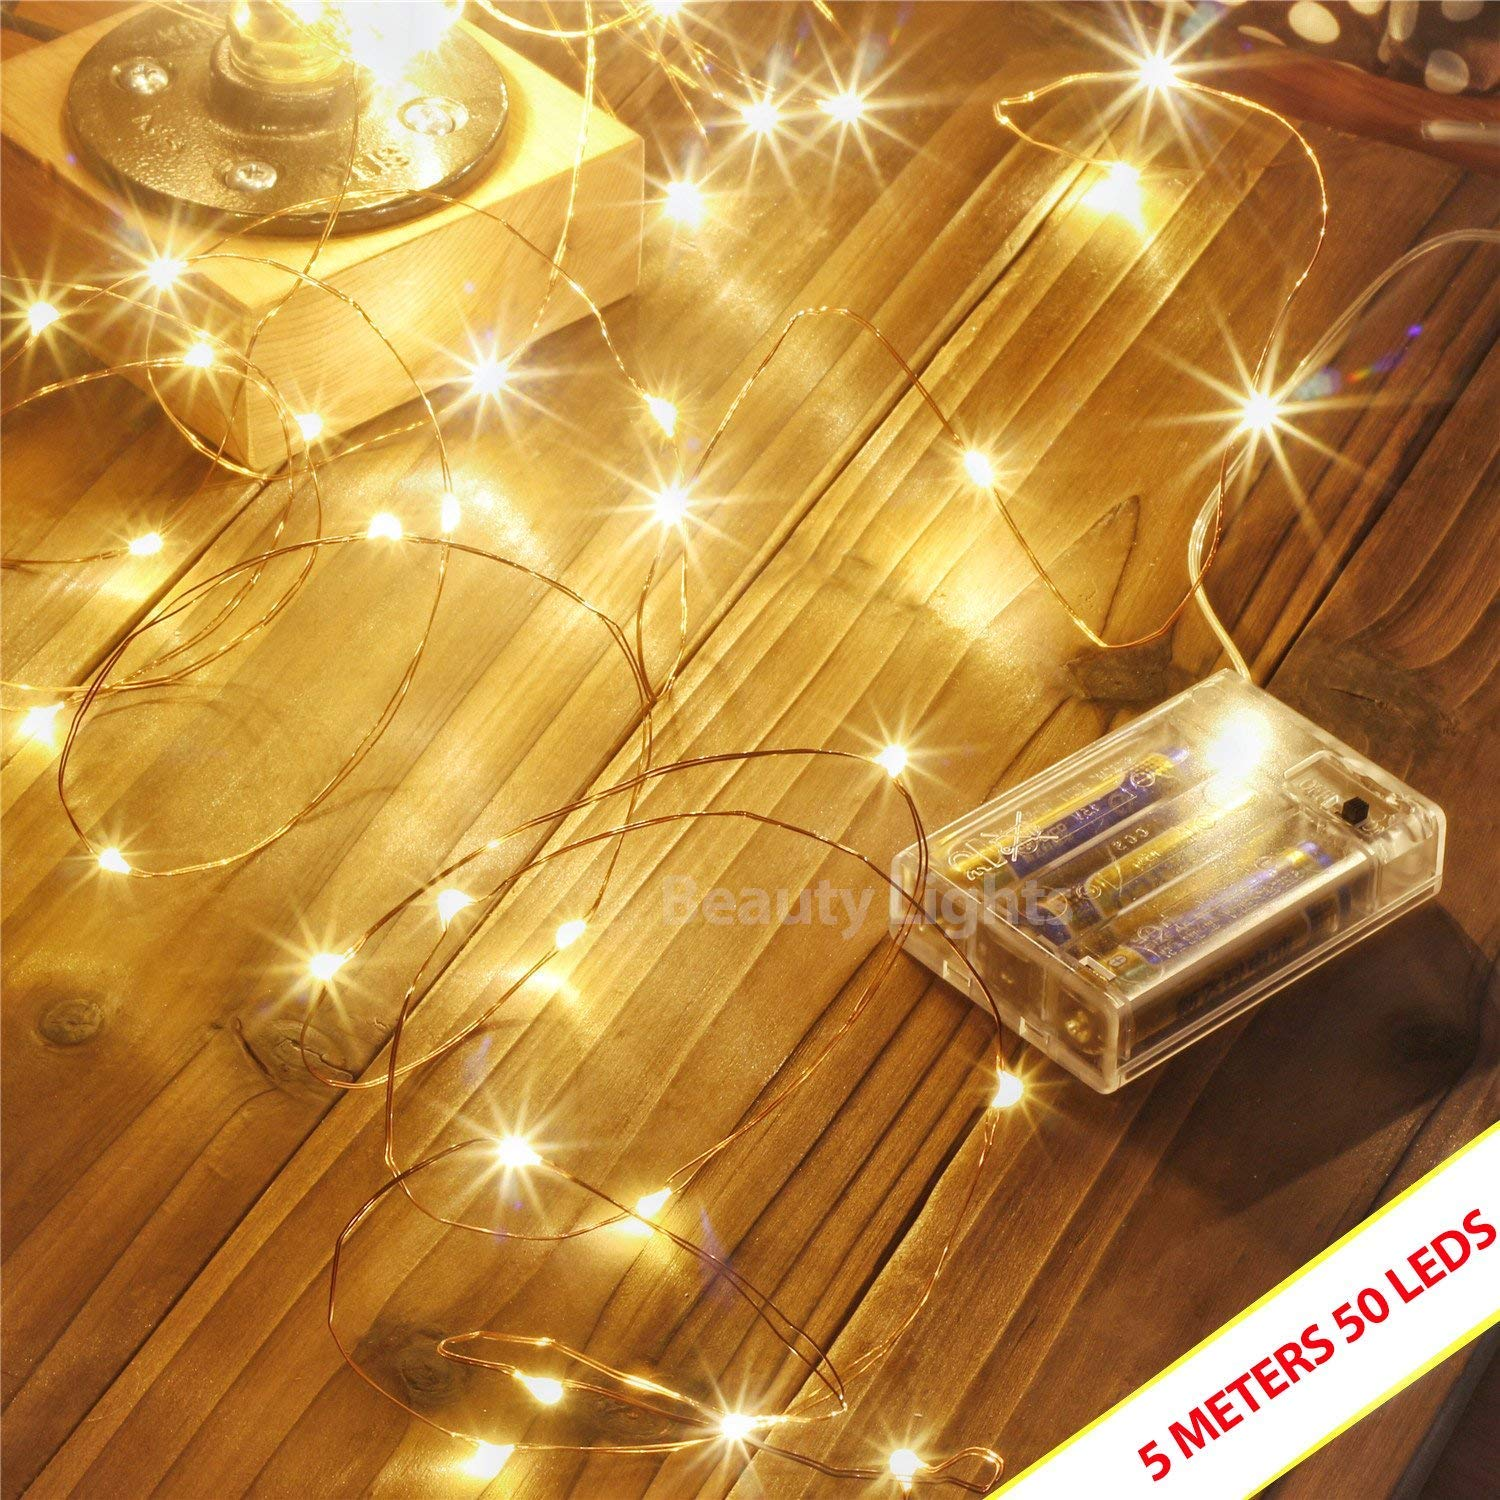 Buy Beauty Lights Copper String 3 Aa Battery Operated Australia Silicon Chip Online House Wiring Looking At Light Switches Portable Led 5 Meters 50 Low Prices In India